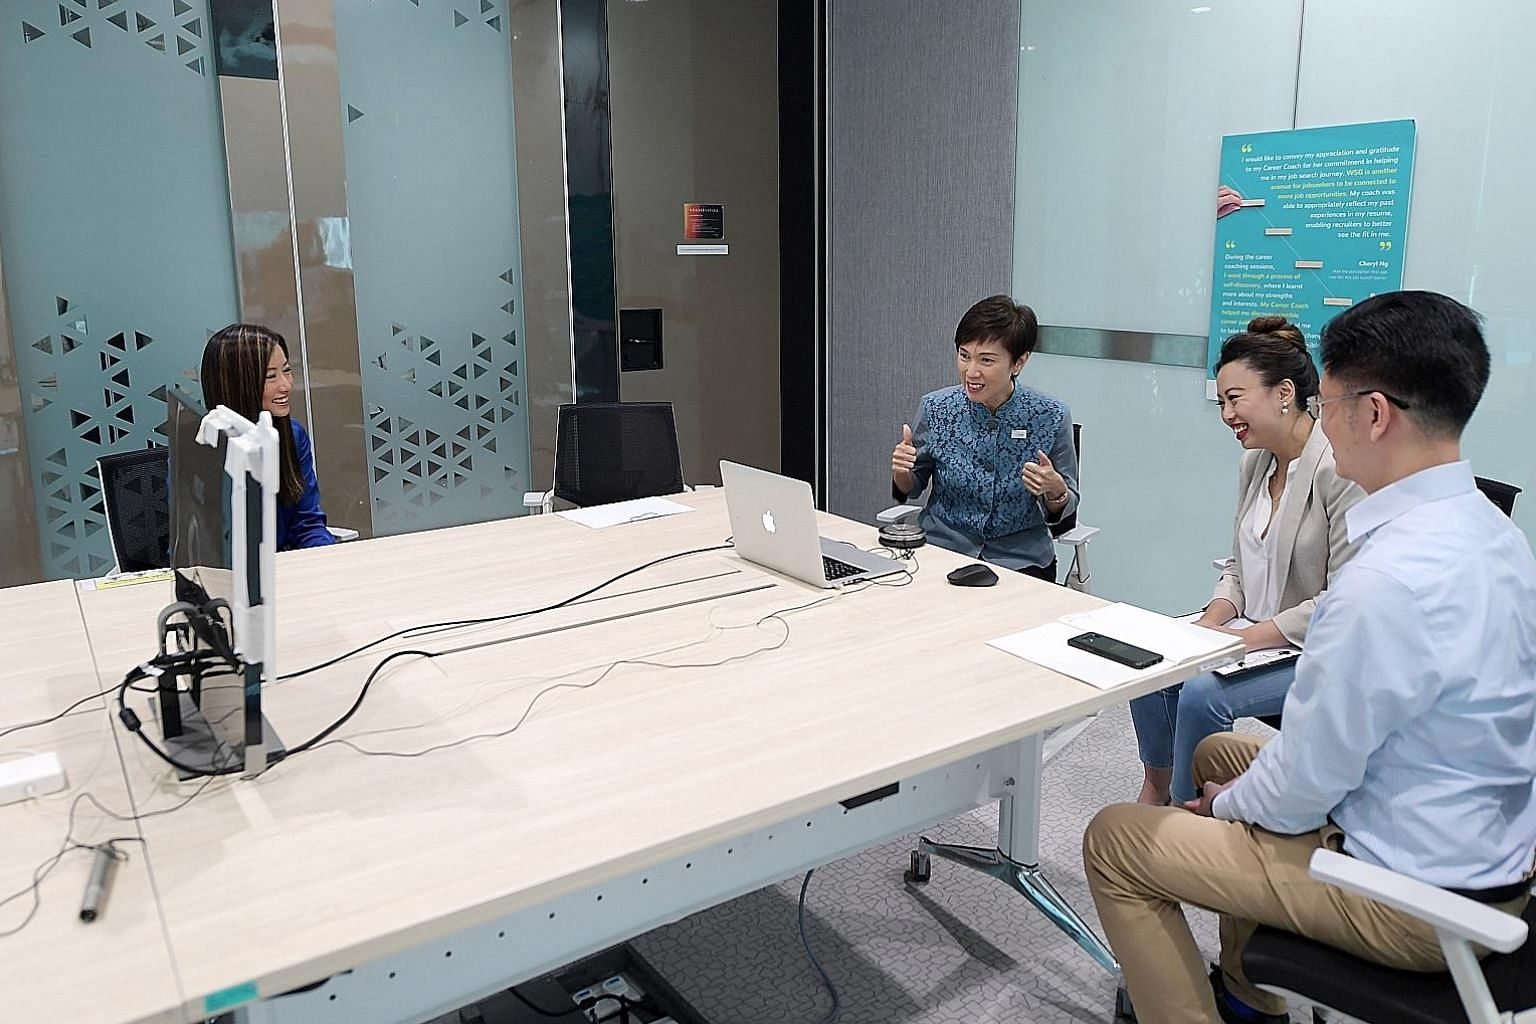 Manpower Minister Josephine Teo and School of Concepts director Mint Lim (second from right) interacting with jobseekers in a virtual networking session at Workforce Singapore's office yesterday, with Mr Chris Lau, senior career coach at WSG's career